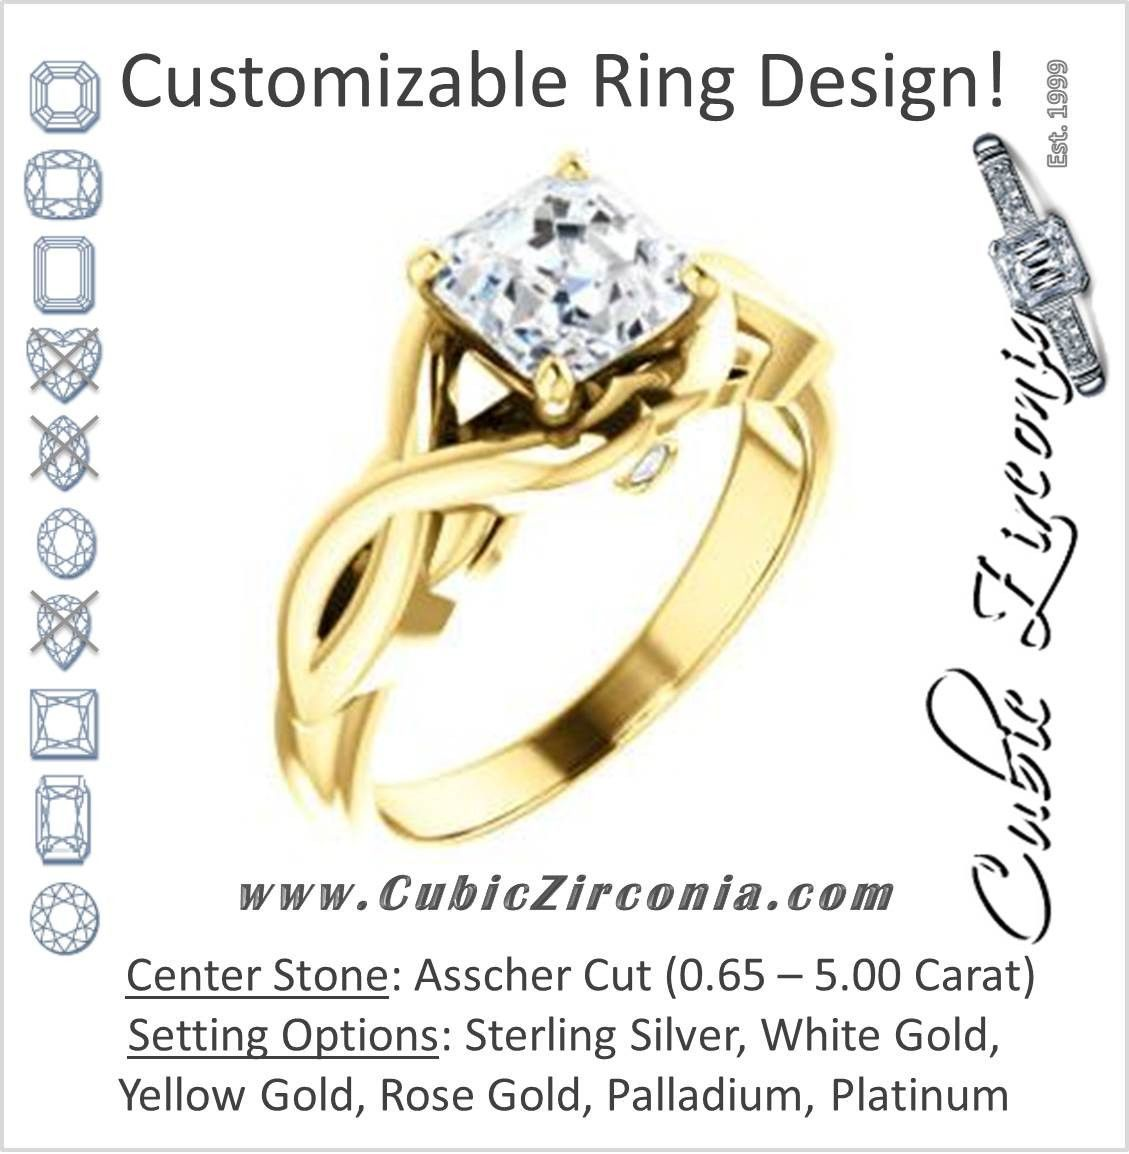 Cubic Zirconia Engagement Ring- The Lakshmi (Customizable Cathedral-set Asscher Cut Style with Twisting Split Band & Peekaboo Accents)